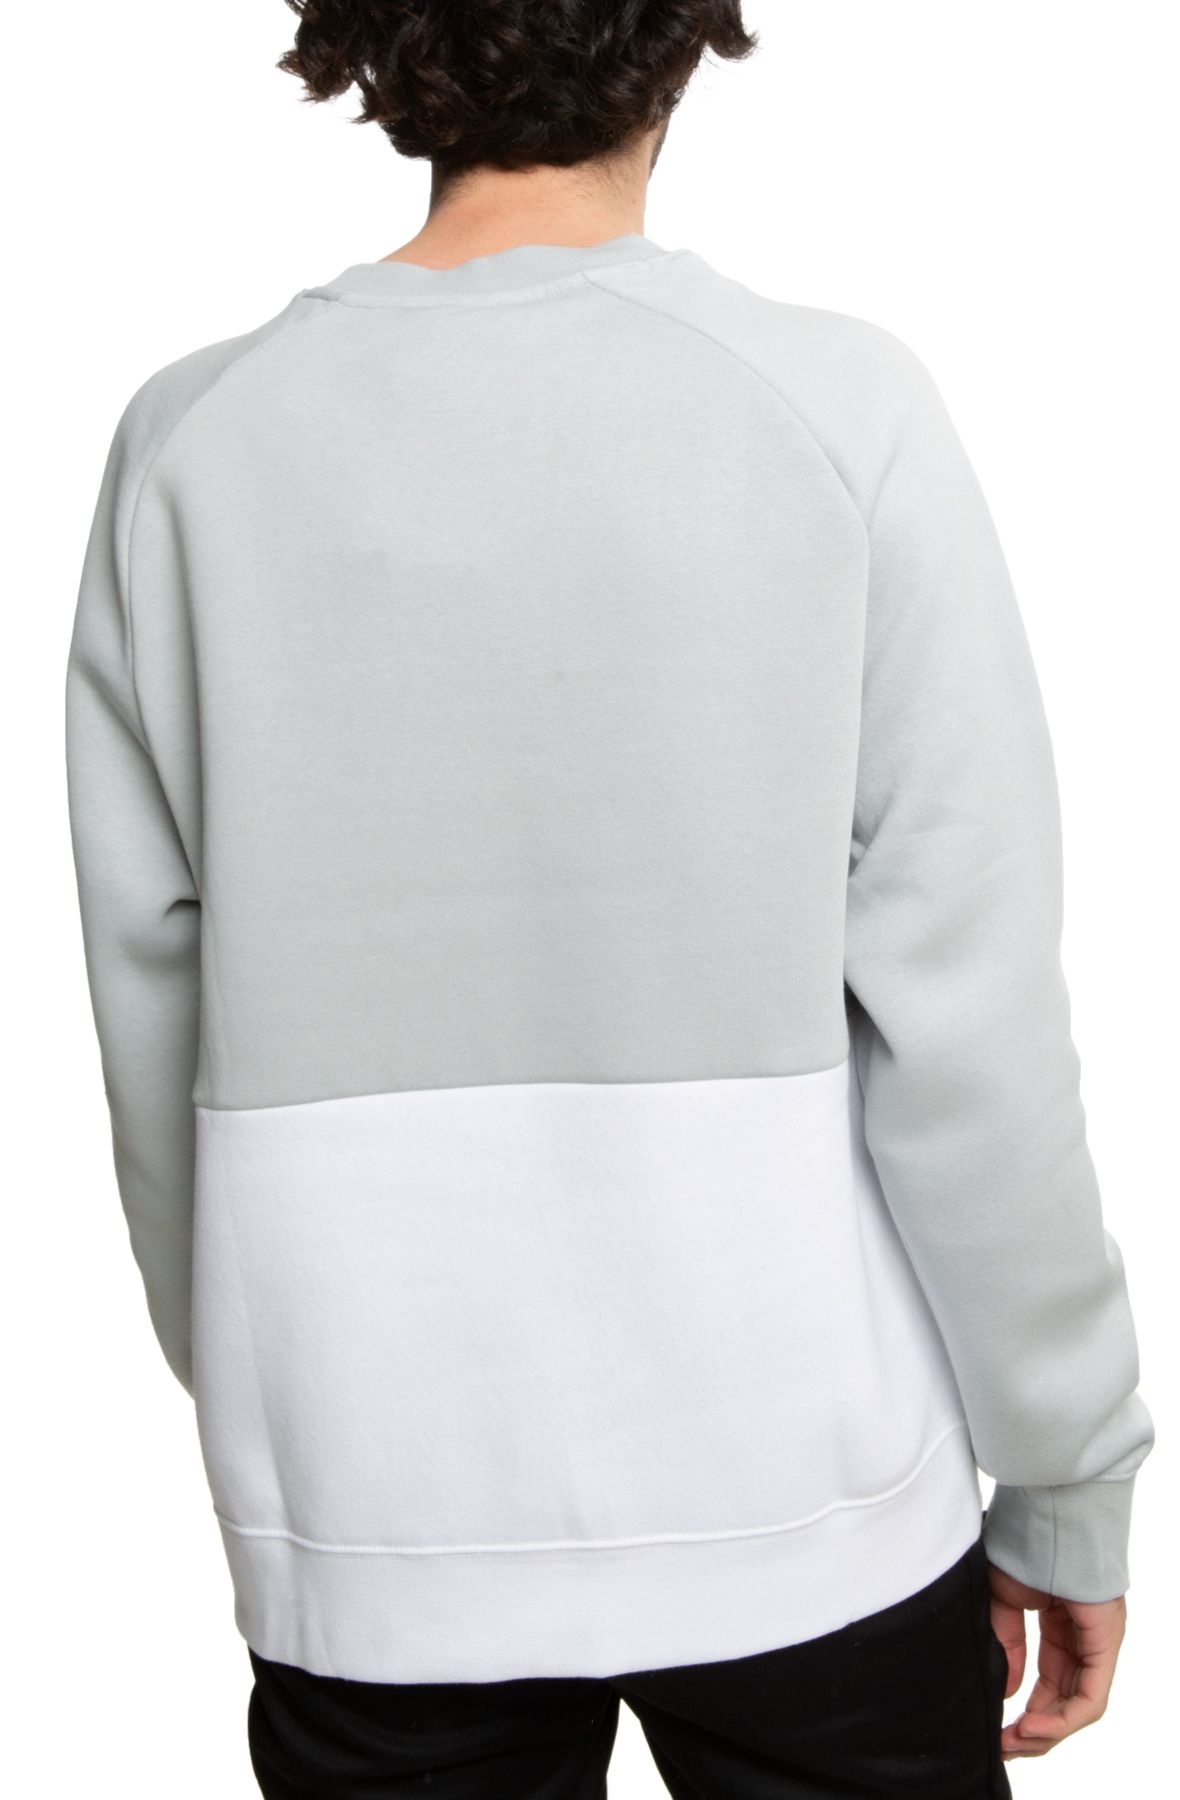 AIR COLORBLOCK FLEECE CREW